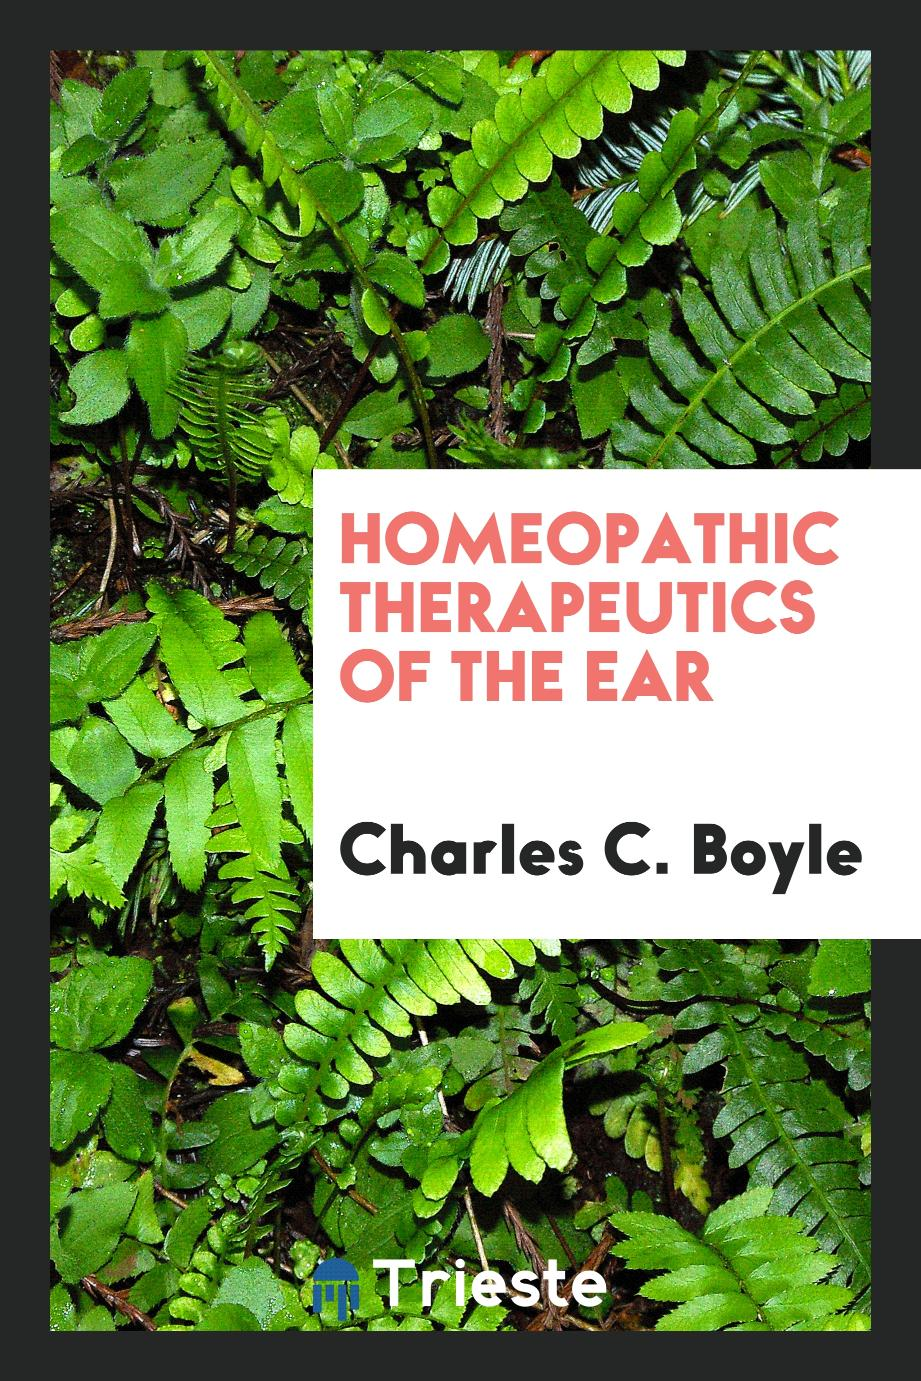 Homeopathic Therapeutics of the Ear